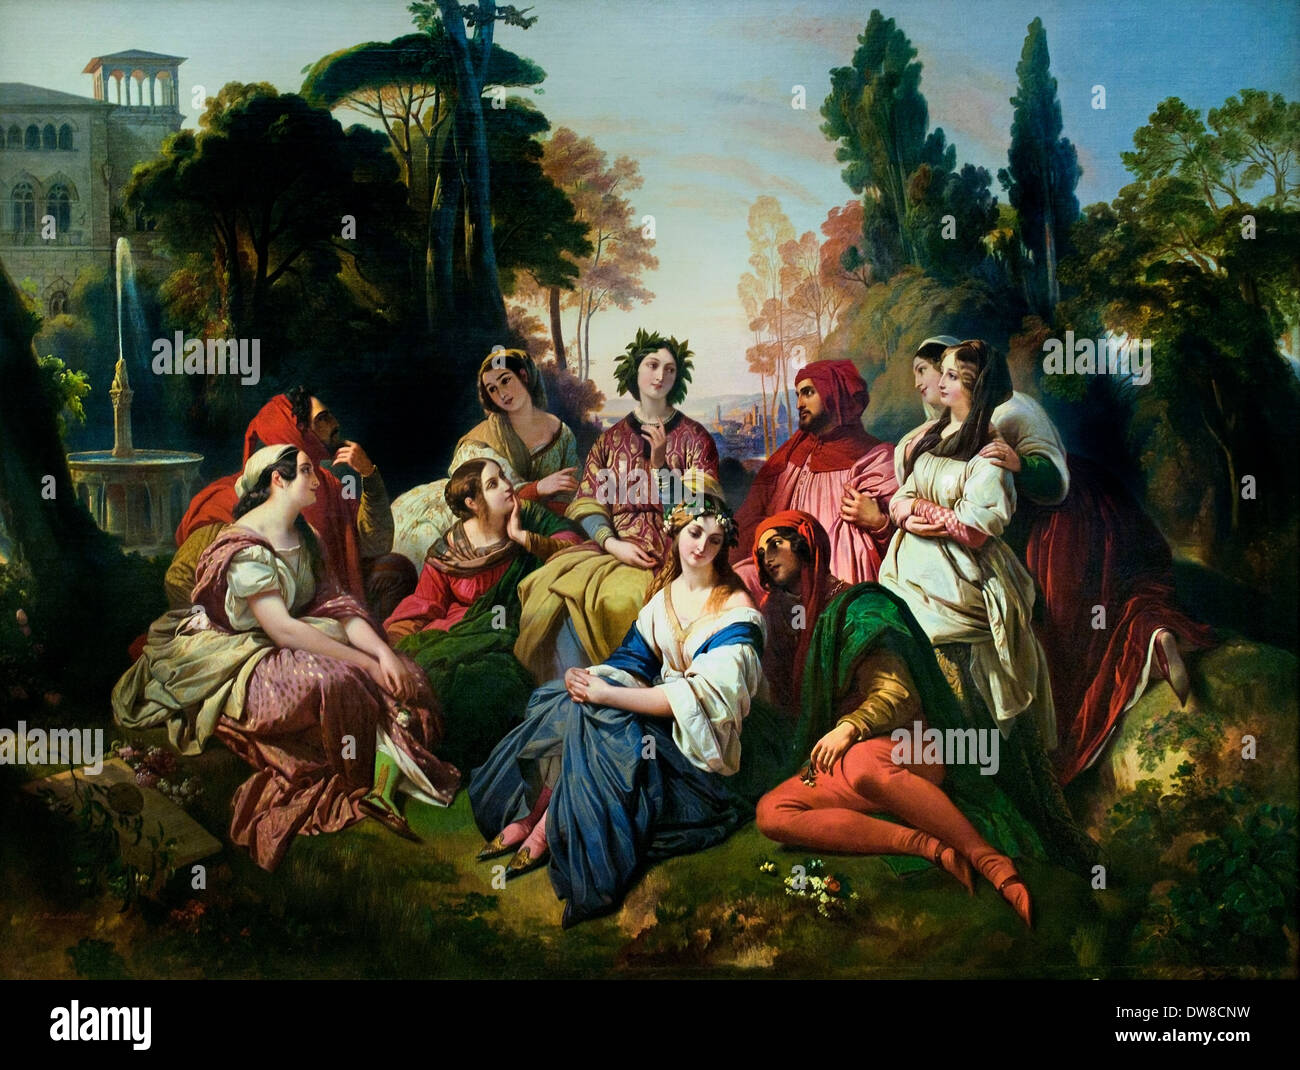 Le Decameron 1837 Franz Xaver Winterhalter1805 - 1873 Allemand Allemagne Photo Stock